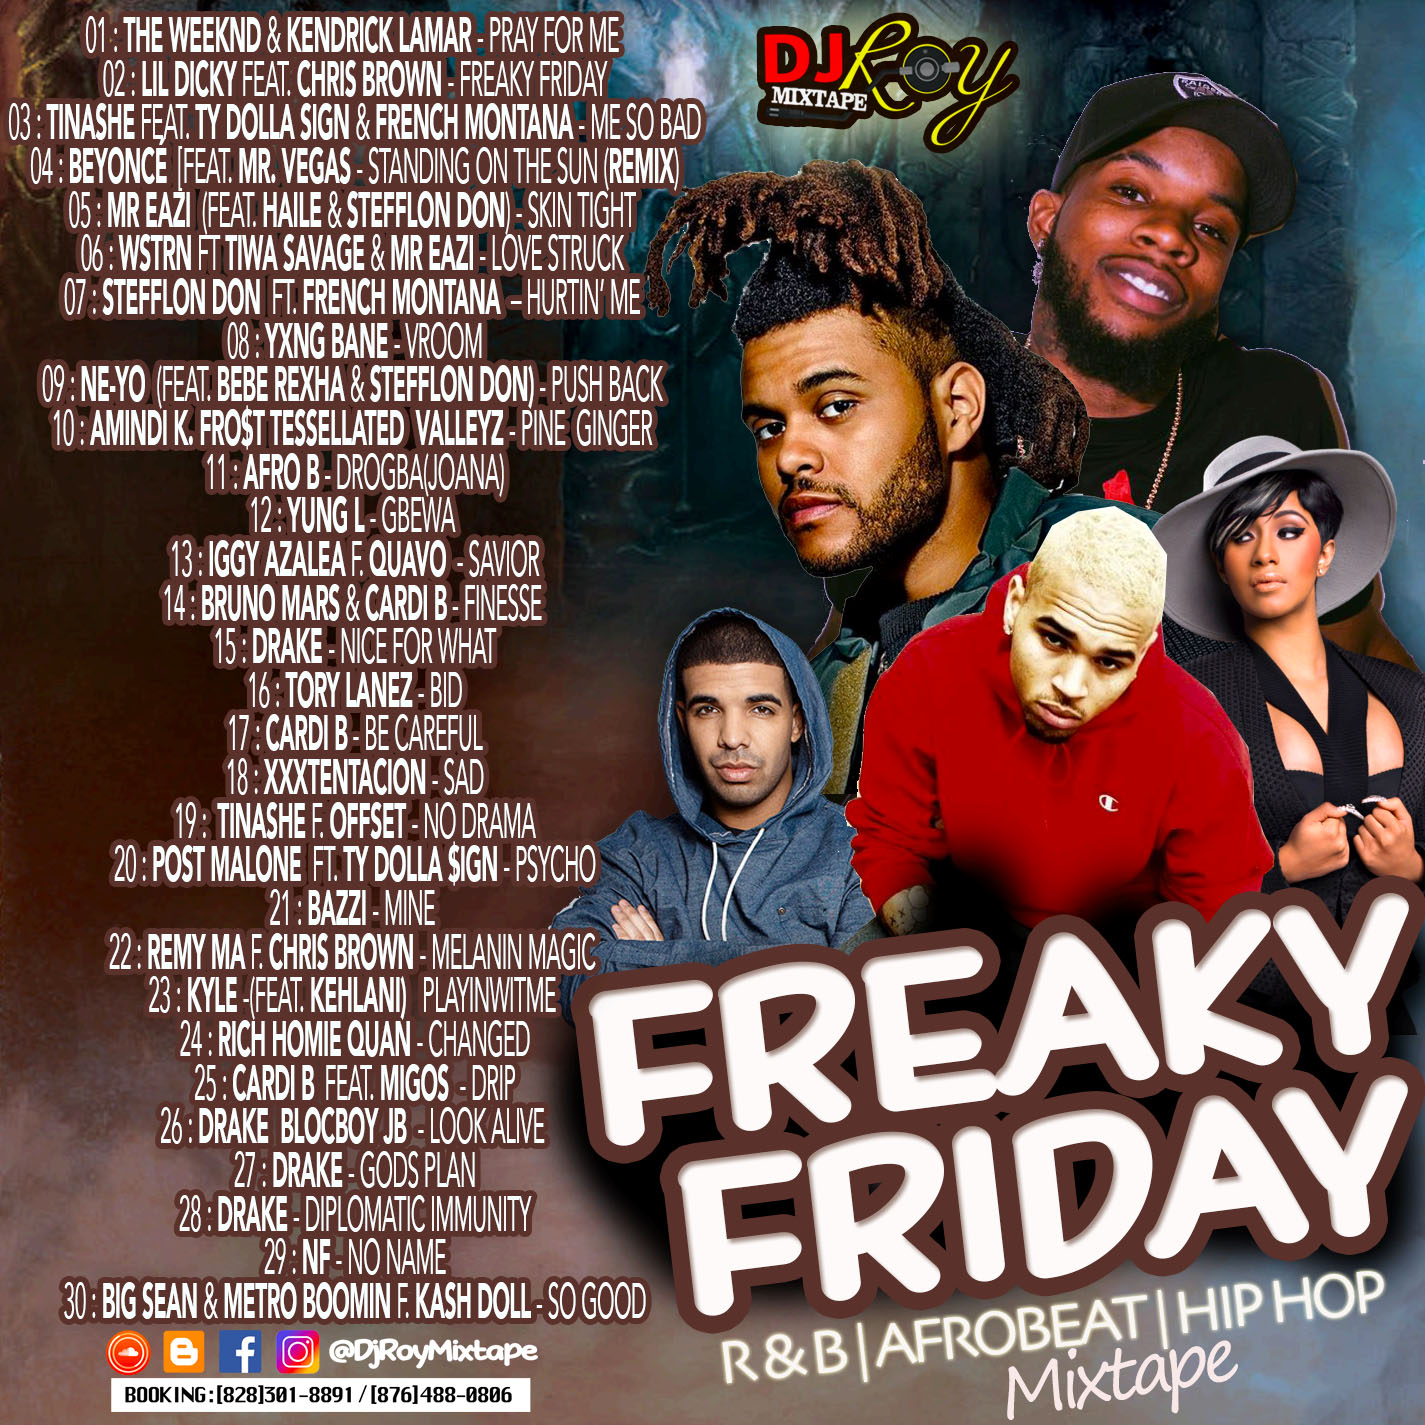 DJROYMIXTAPE : DJ ROY FREAKY FRIDAY RNB/AFROBEAT/HIP HOP MIX